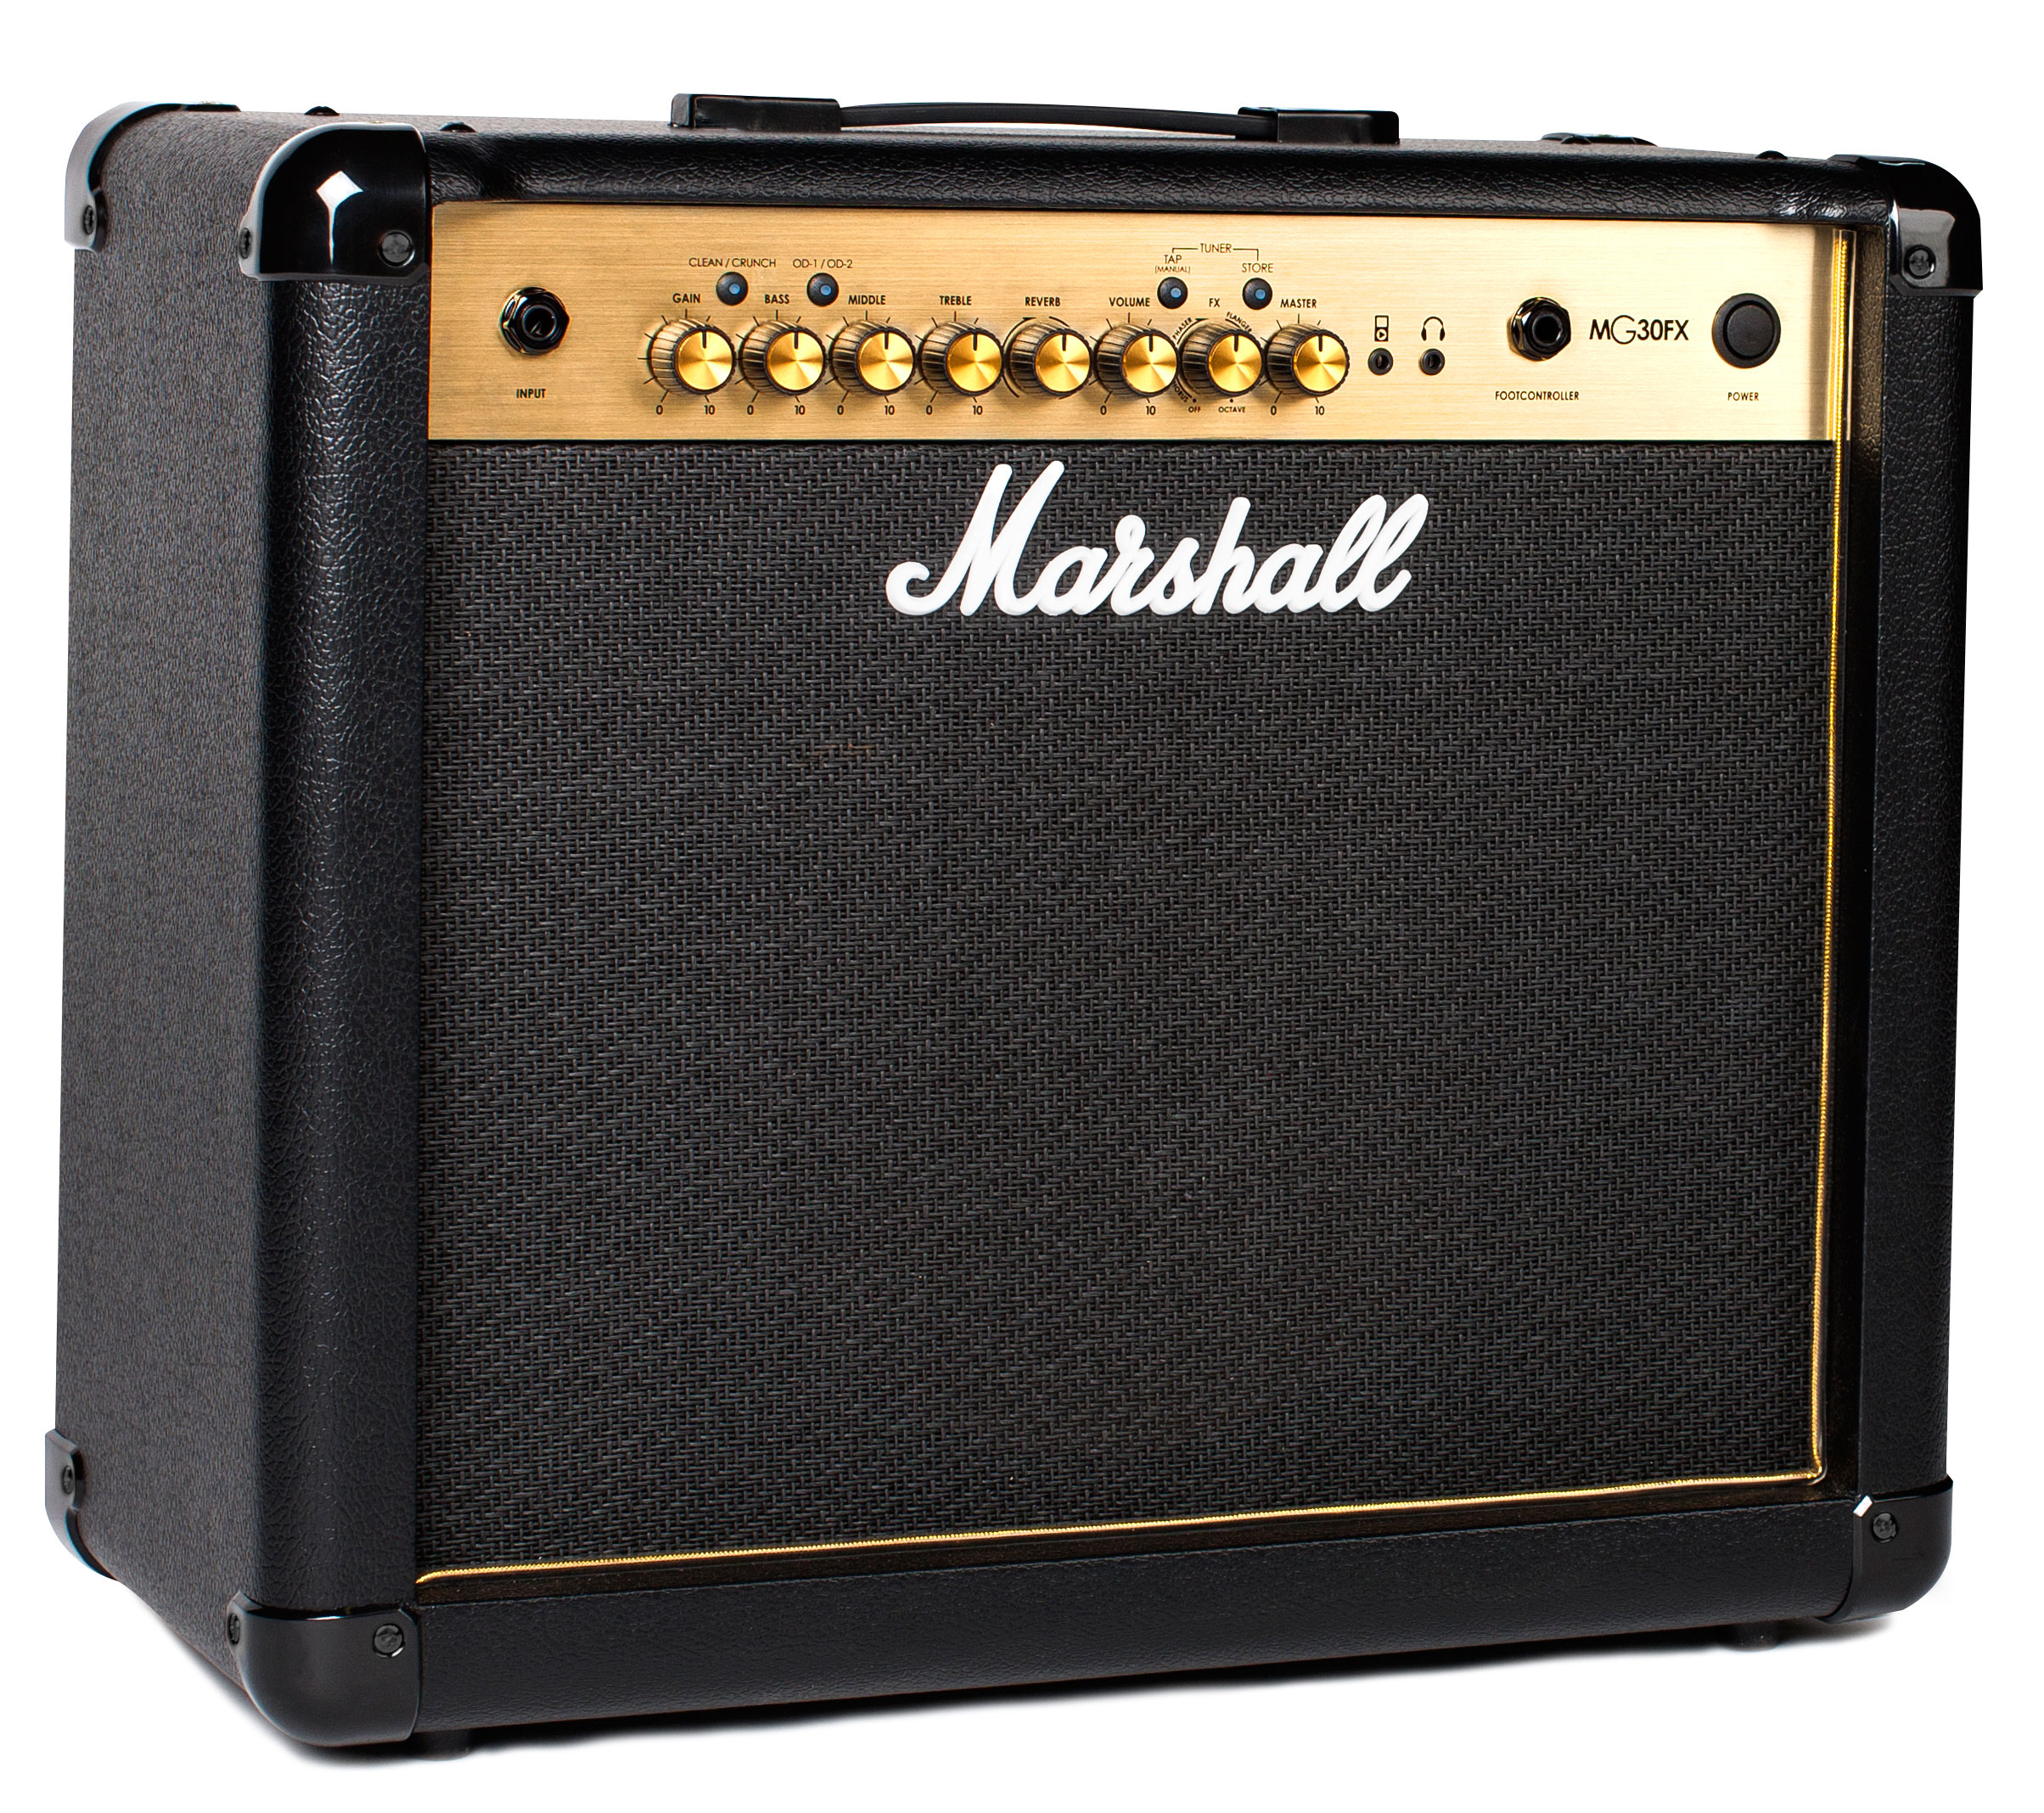 Marshall M-MG30GFX-U review